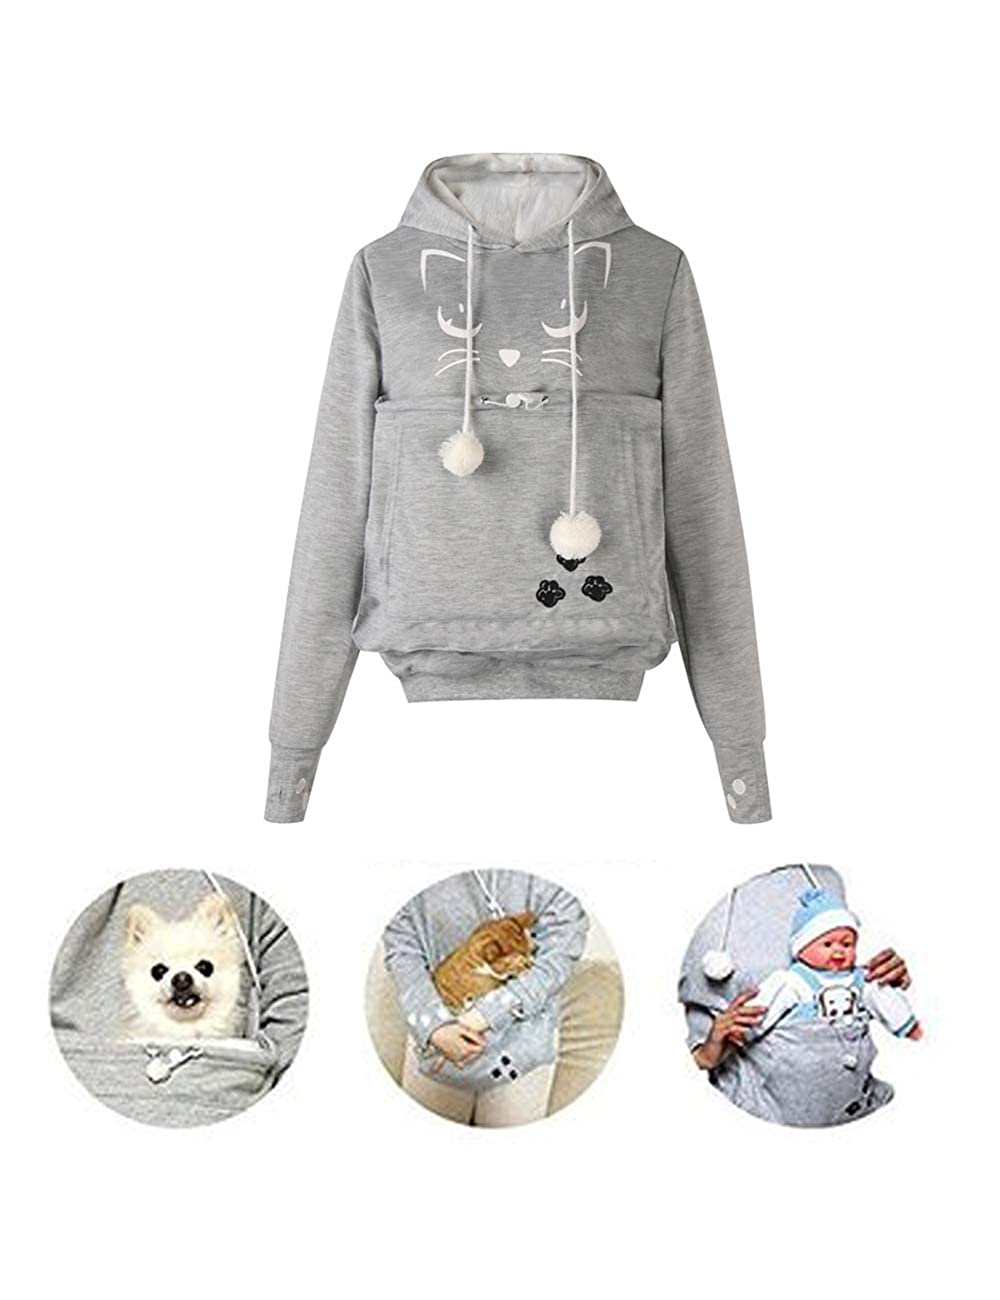 BESBOMIG Unisex Pet Holder Hoodie Sweatshirt Big Pouch Cat Eared Dog Carriers Long Sleeve Loose Pullover Tops Blouse Winter Autumn